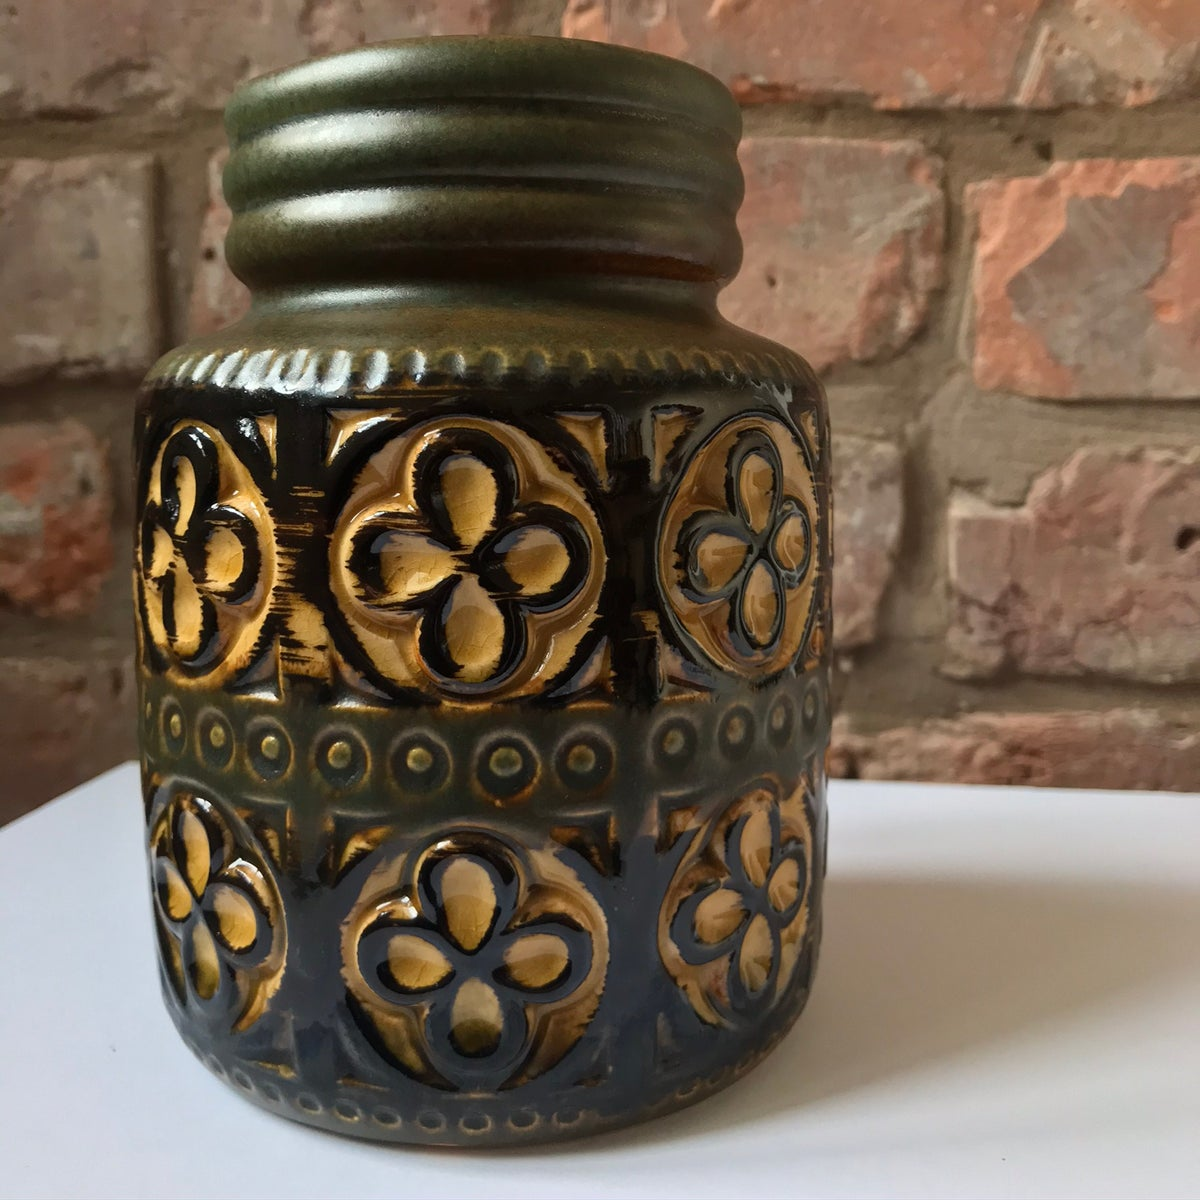 Image of Scheurich Keramik West German Retro Foligno Pottery Vase